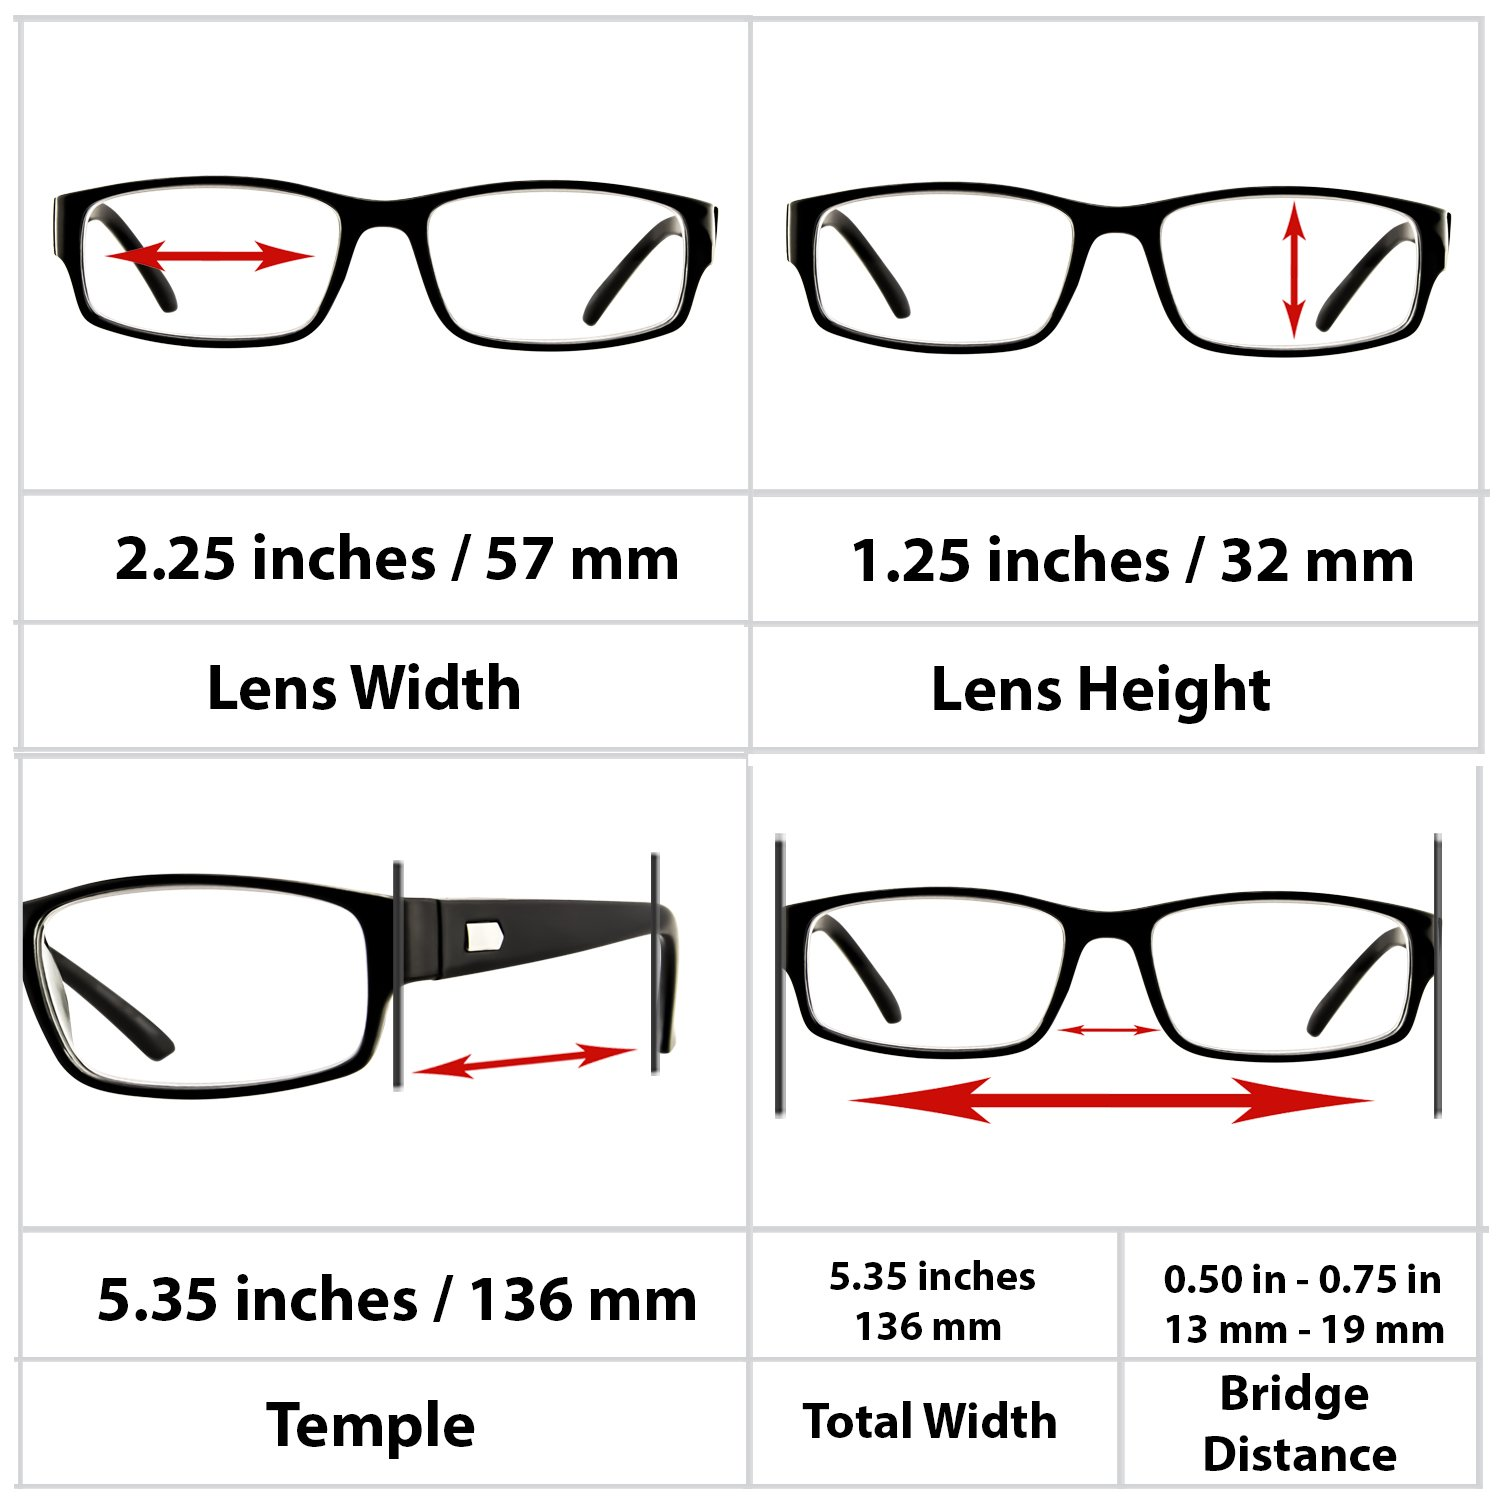 Reading Glasses 3 Pack Black Always Have a Professional Look, Crystal Clear Vision and Sure-Flex Comfort Spring Arms & Dura-Tight Screws 100% Guarantee +2.50 by TruVision Readers (Image #4)